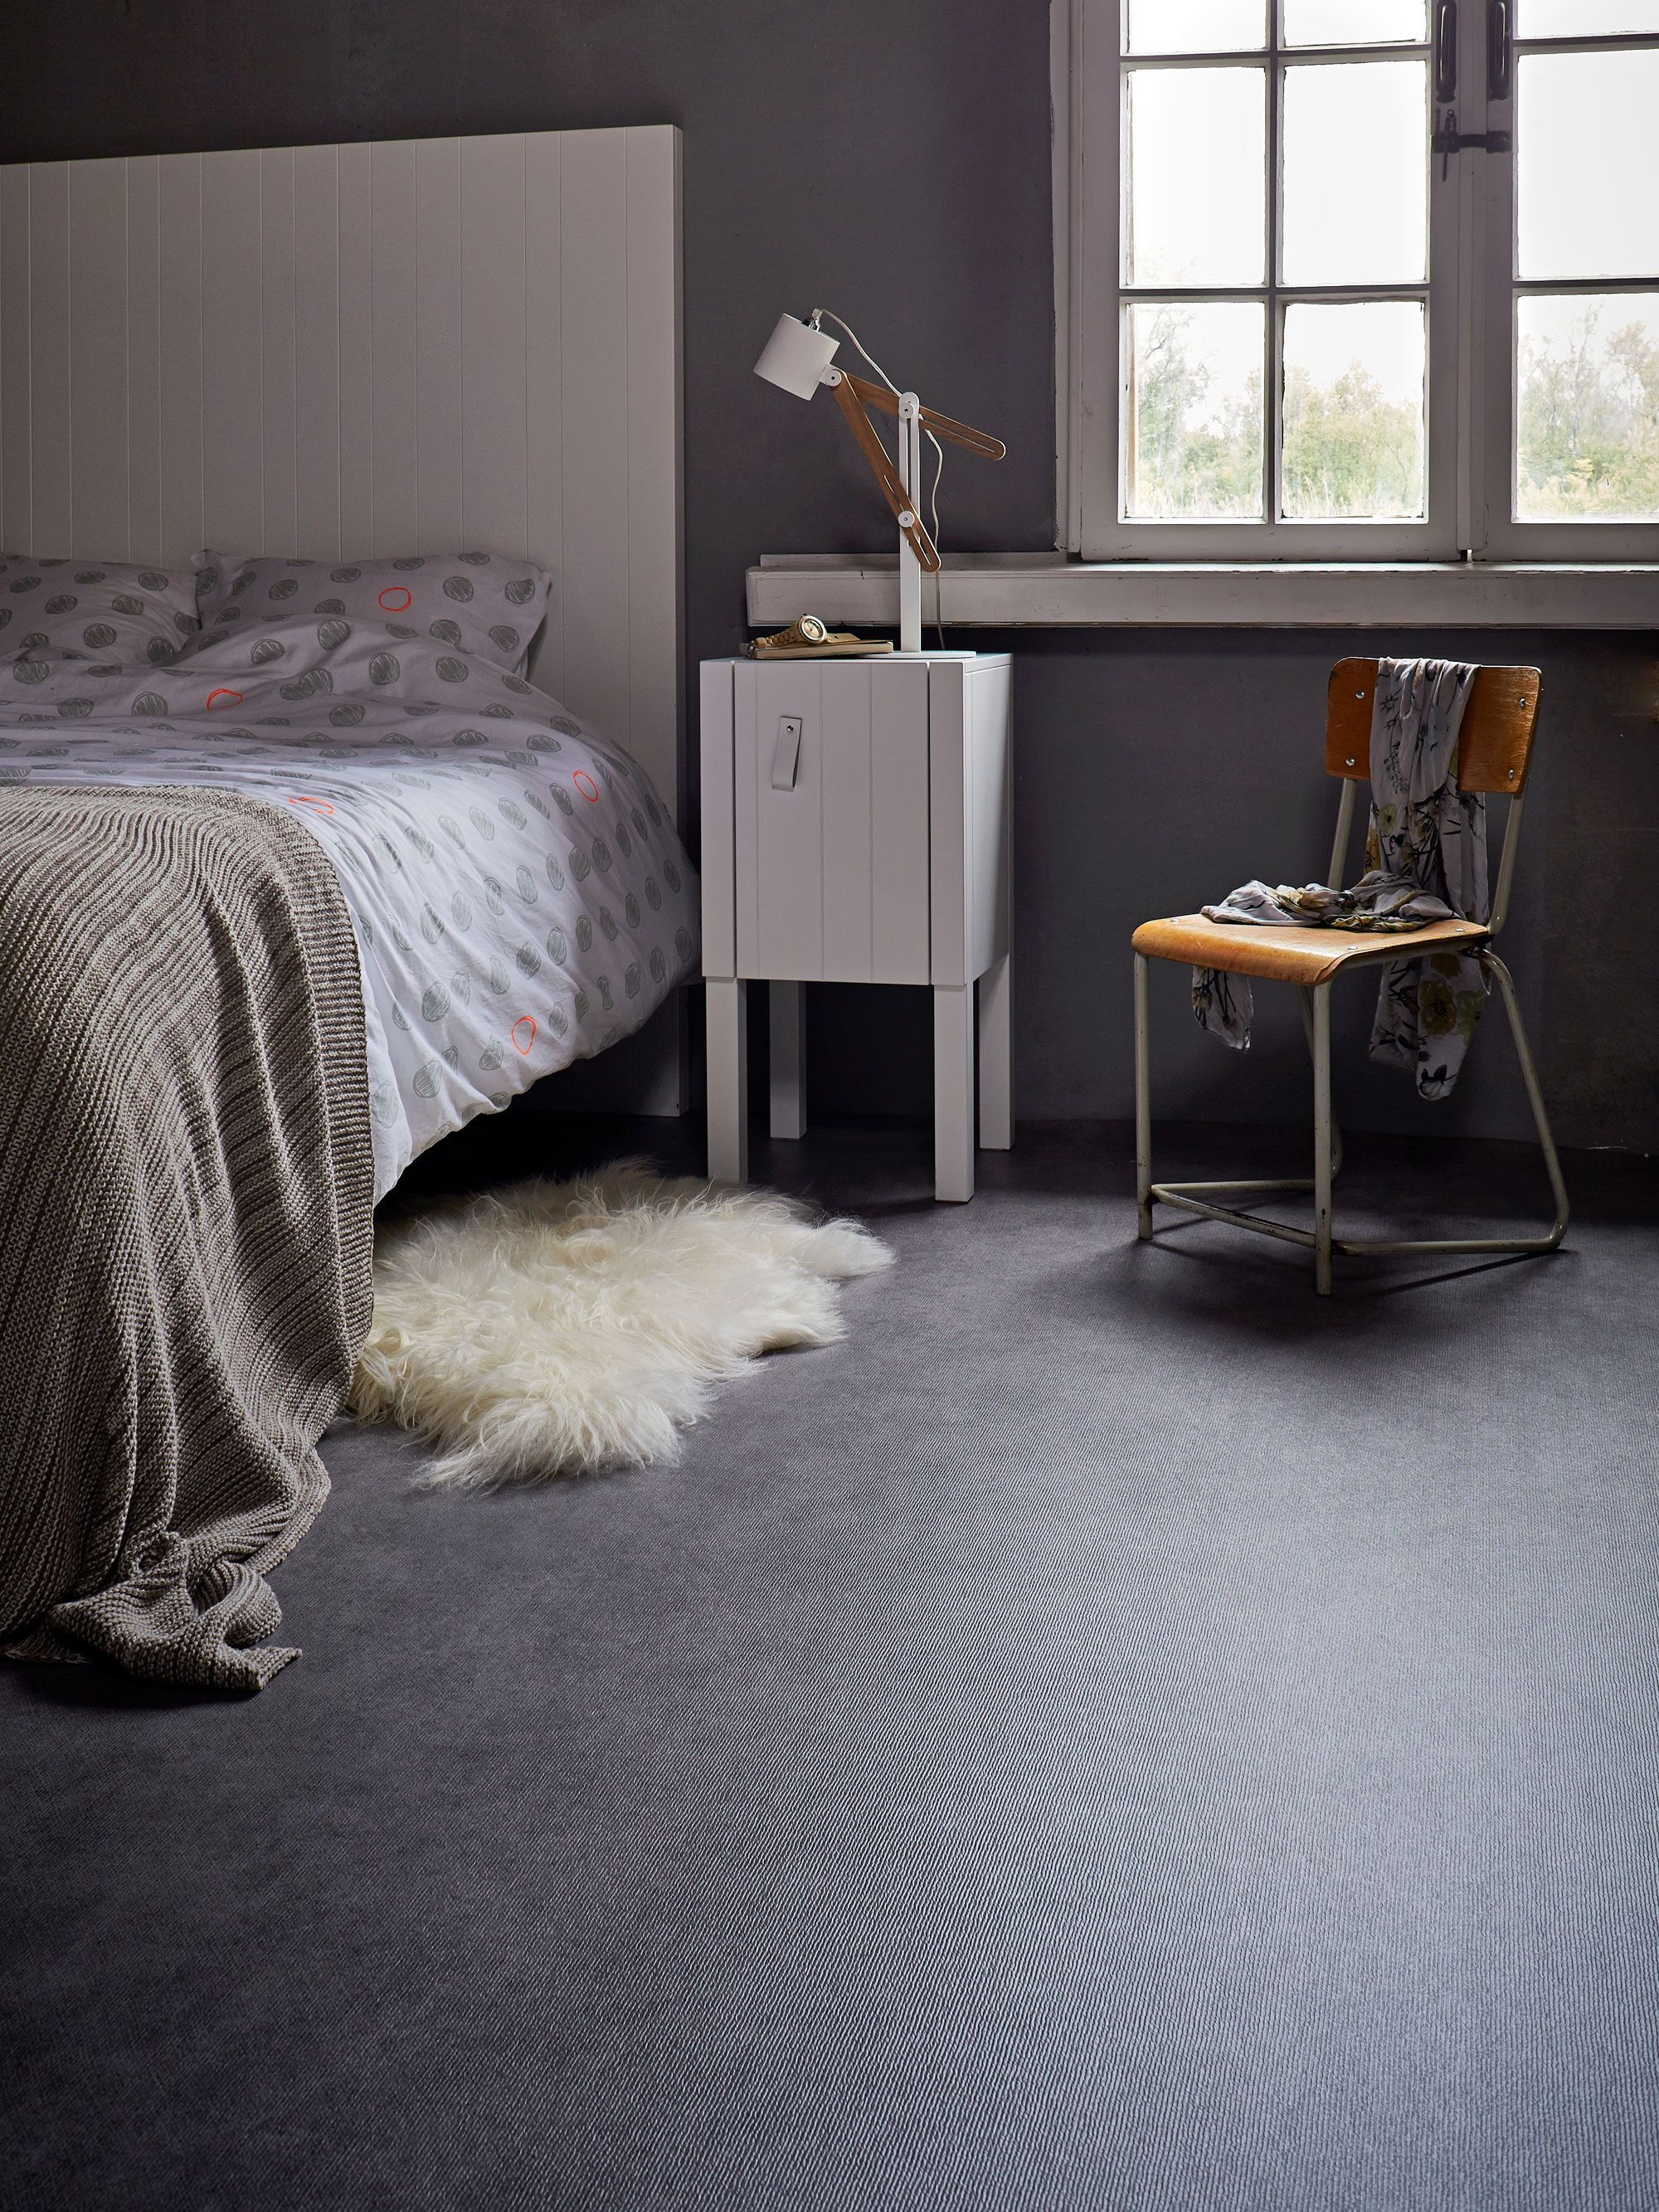 Dark marmoleum floor in the bedroom with a white bed and - Bedroom with mattress on the floor ...